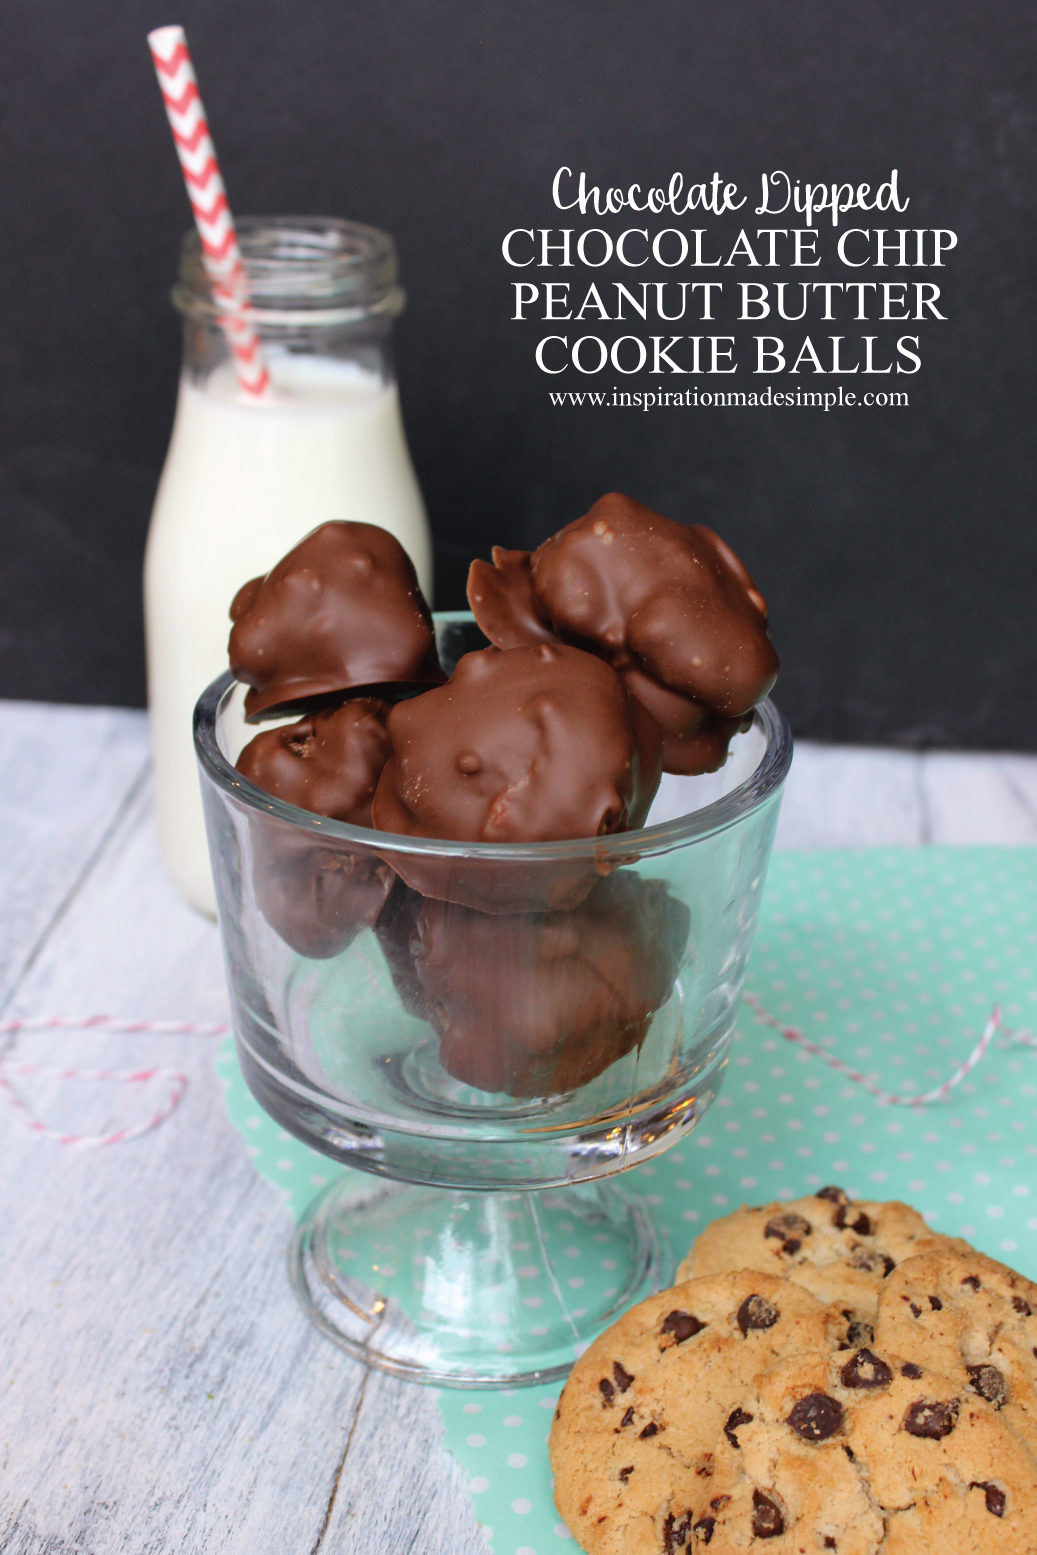 Chocolate Dipped Chocolate Chip Peanut Butter Cookie Balls